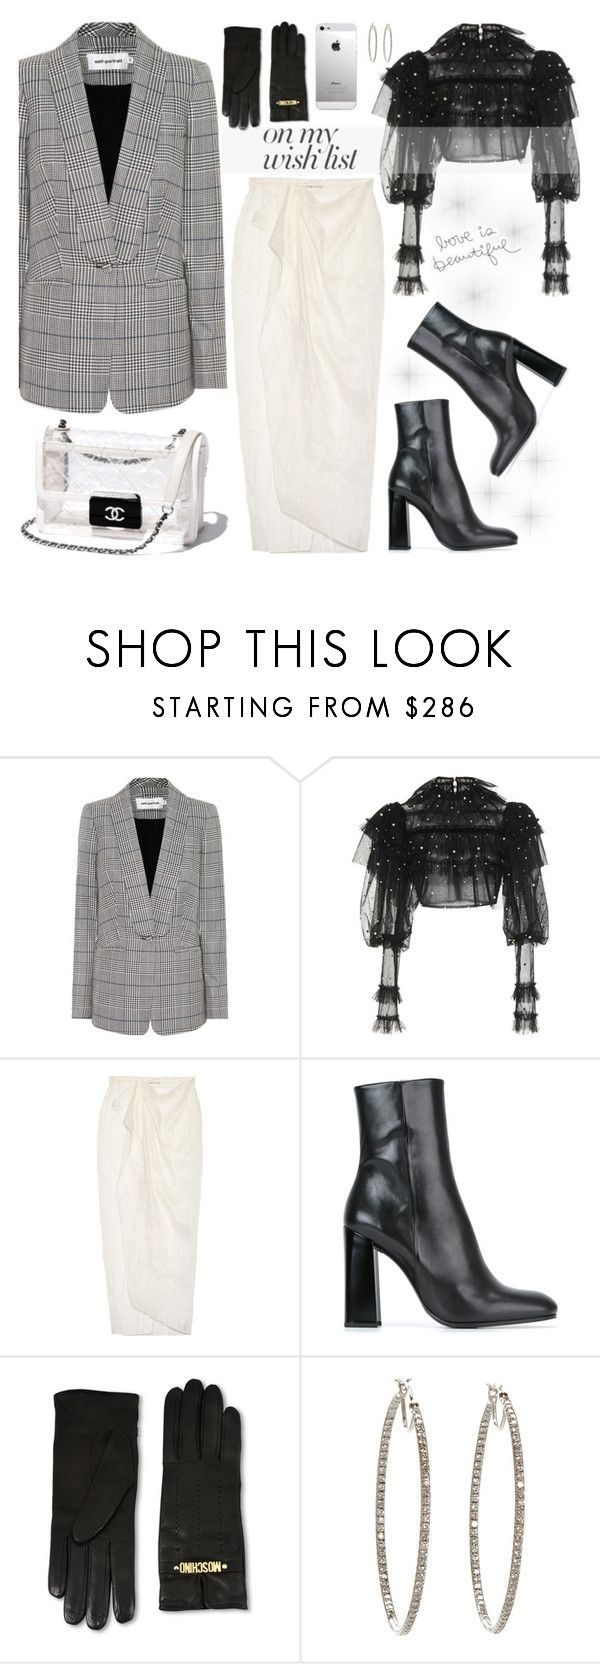 """""""#PolyPresents: Wish List"""" by mell-m ❤ liked on Polyvore featuring self-portrait, Rodarte, Baja East, Jil Sander, Moschino, Cathy Waterman, AT&T, contestentry, polyvorecontest and polyvorefashion"""